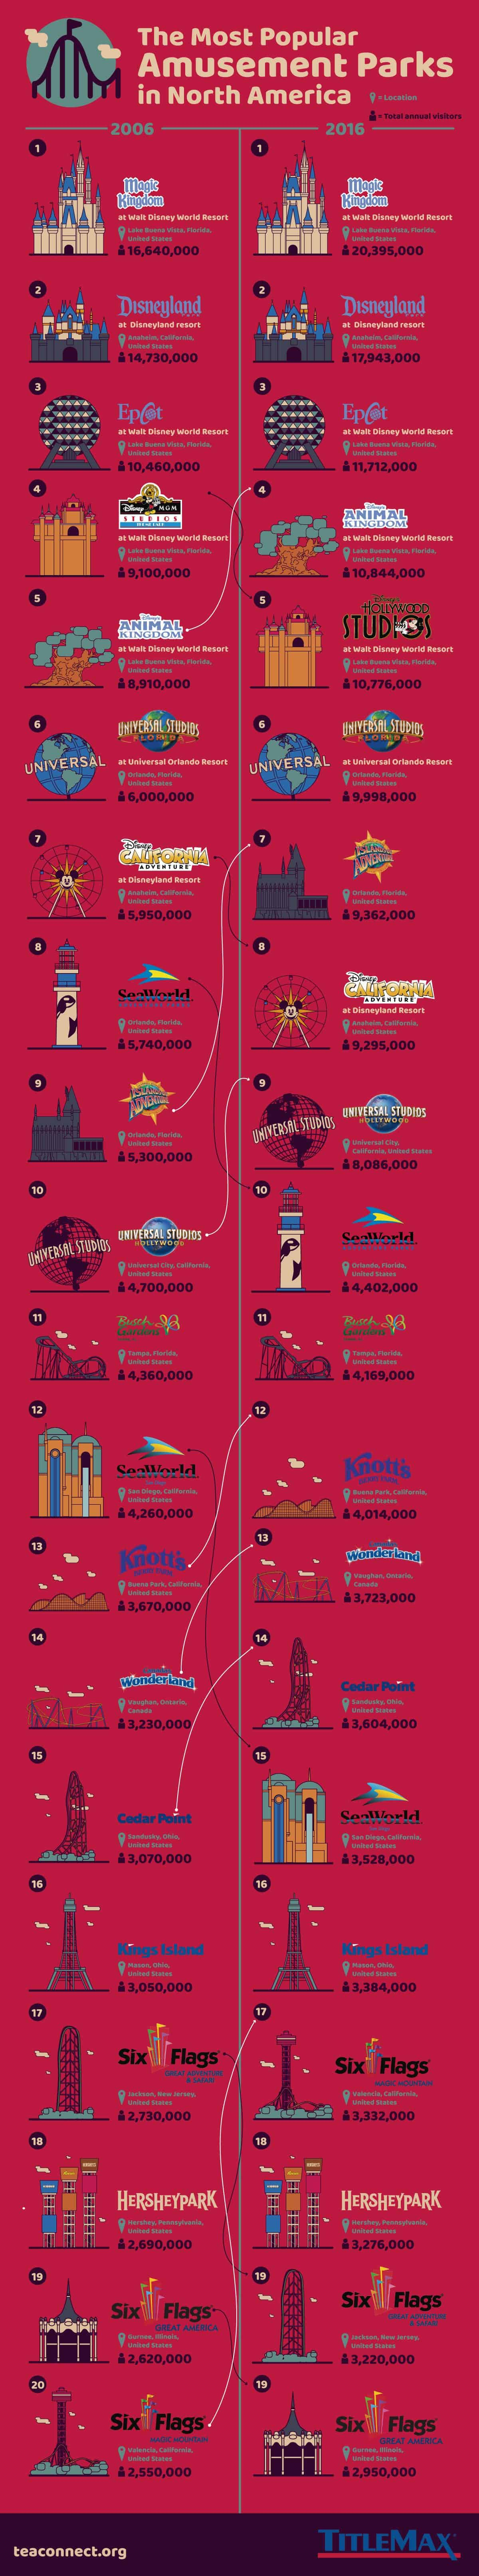 The Most Popular Amusement Parks in North America